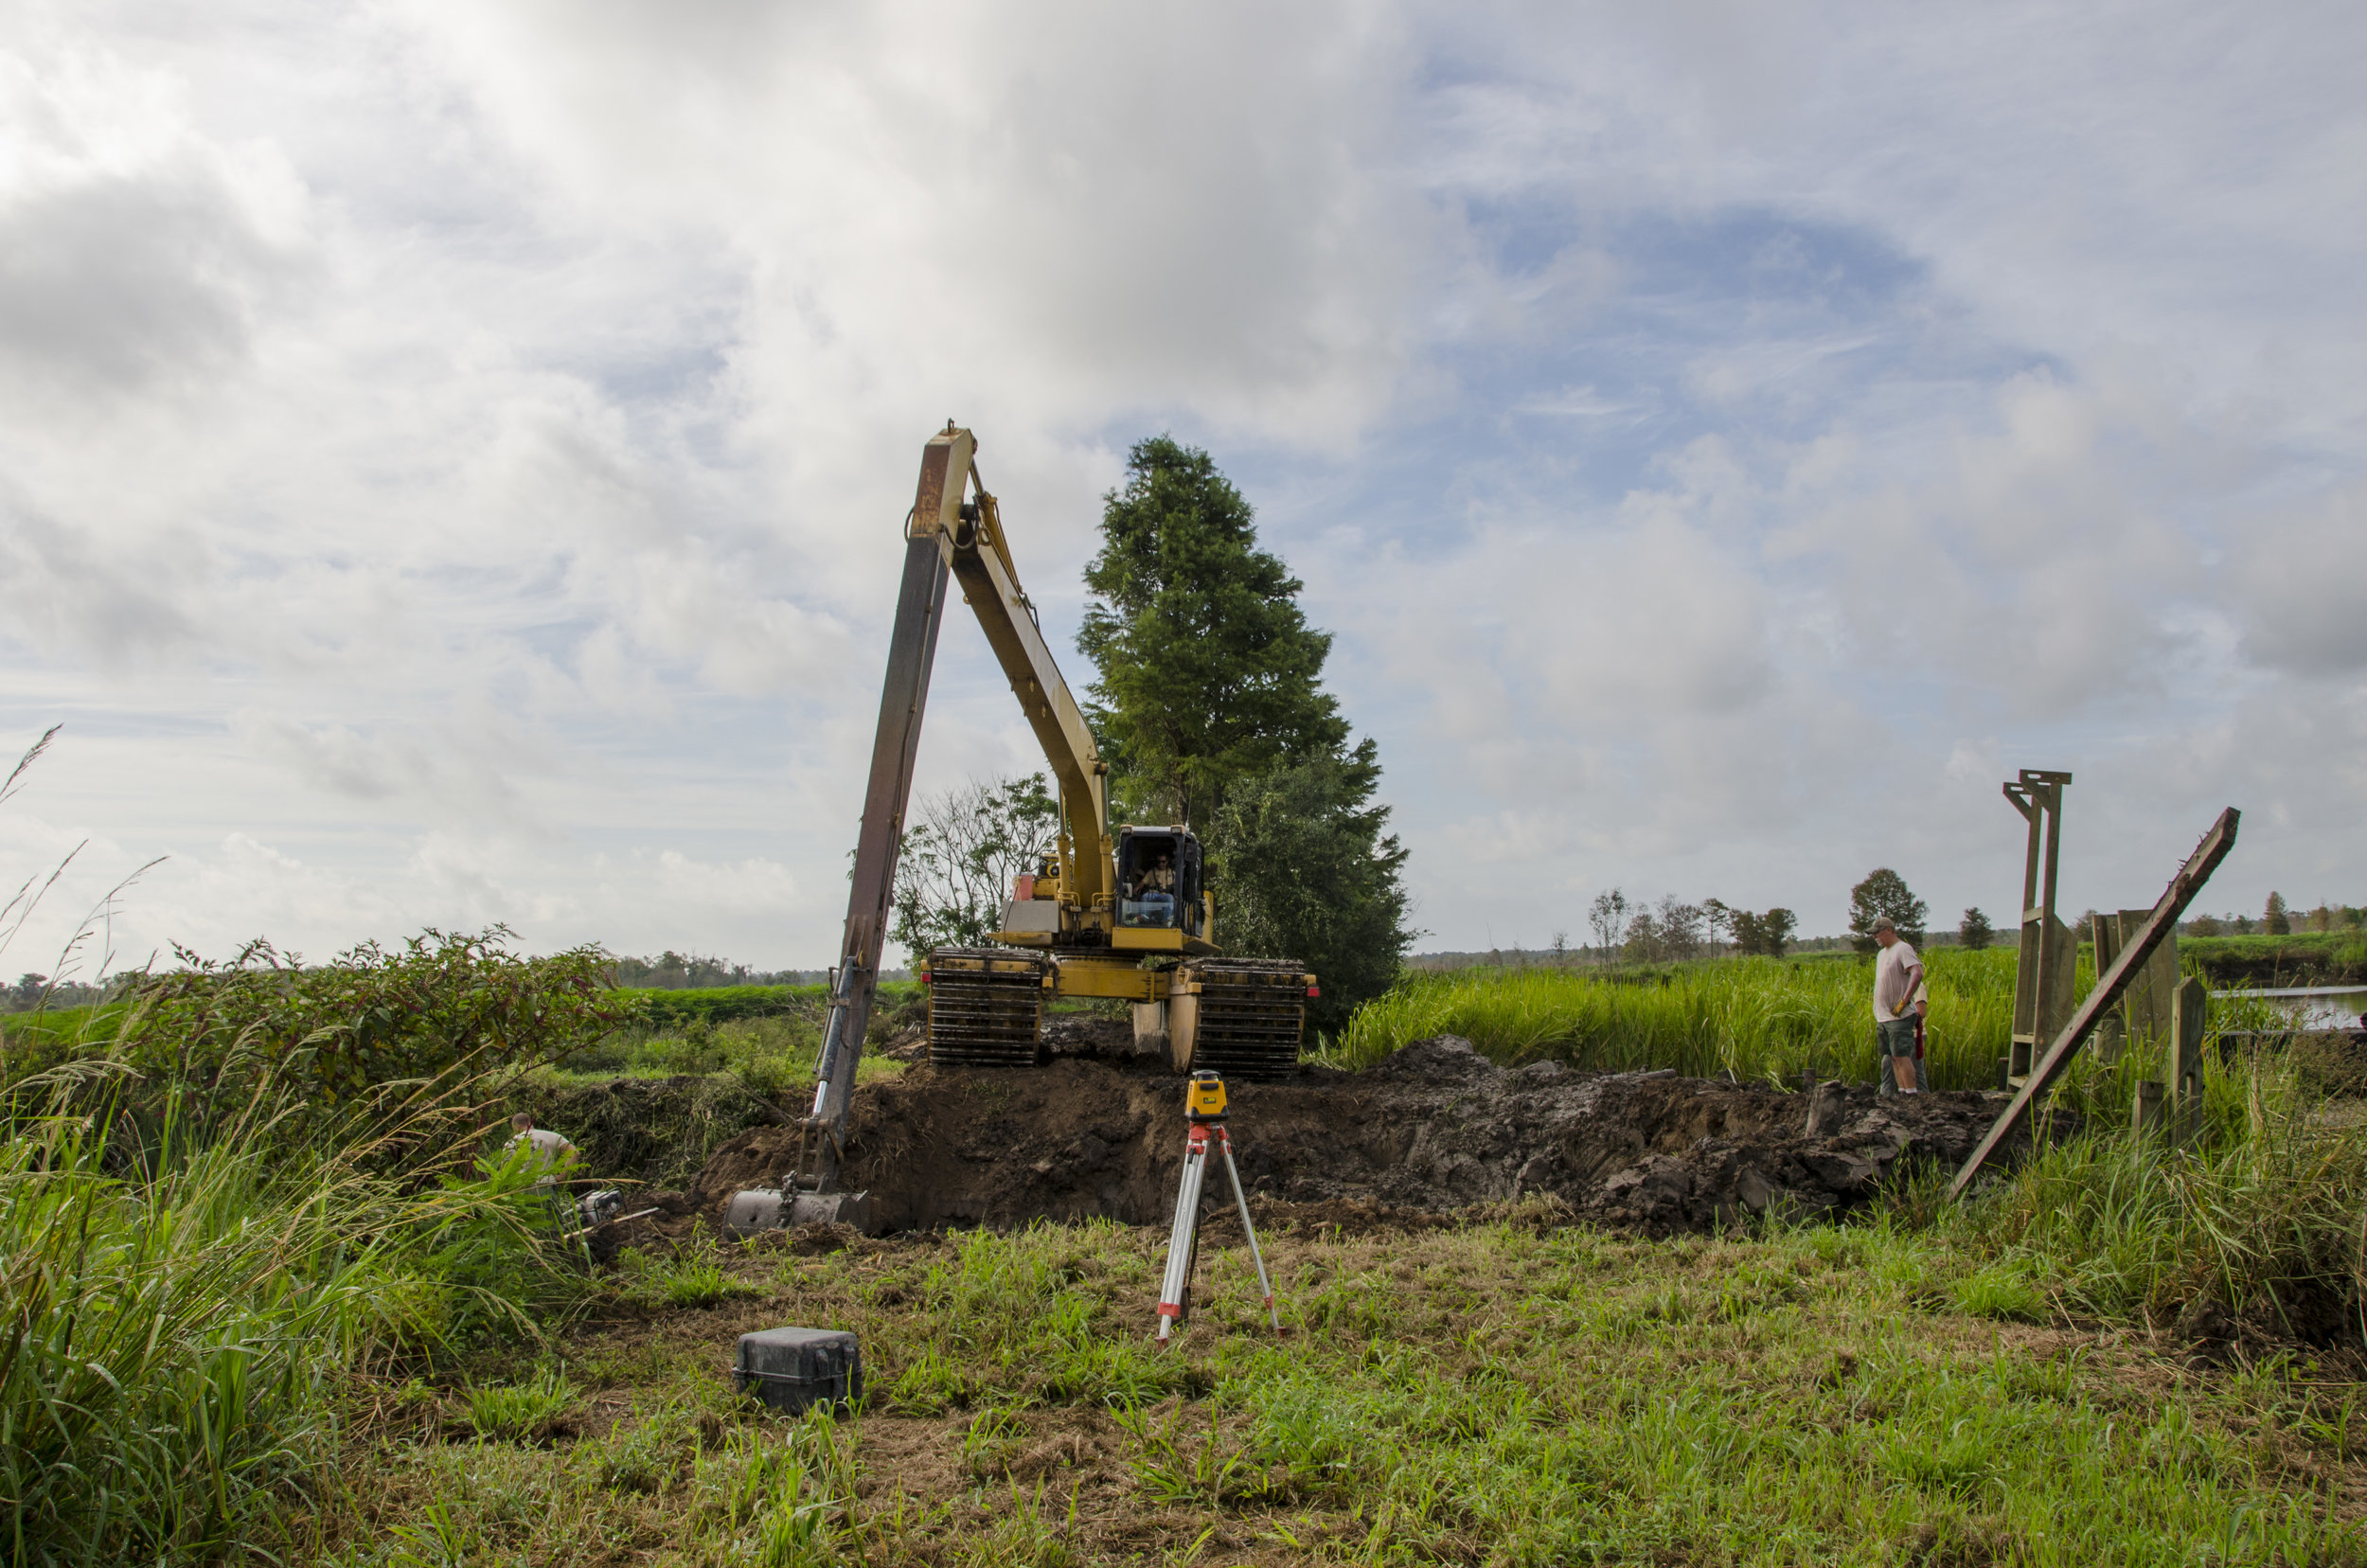 Electronic levels and surveying tools help the crew make an accurate dig.